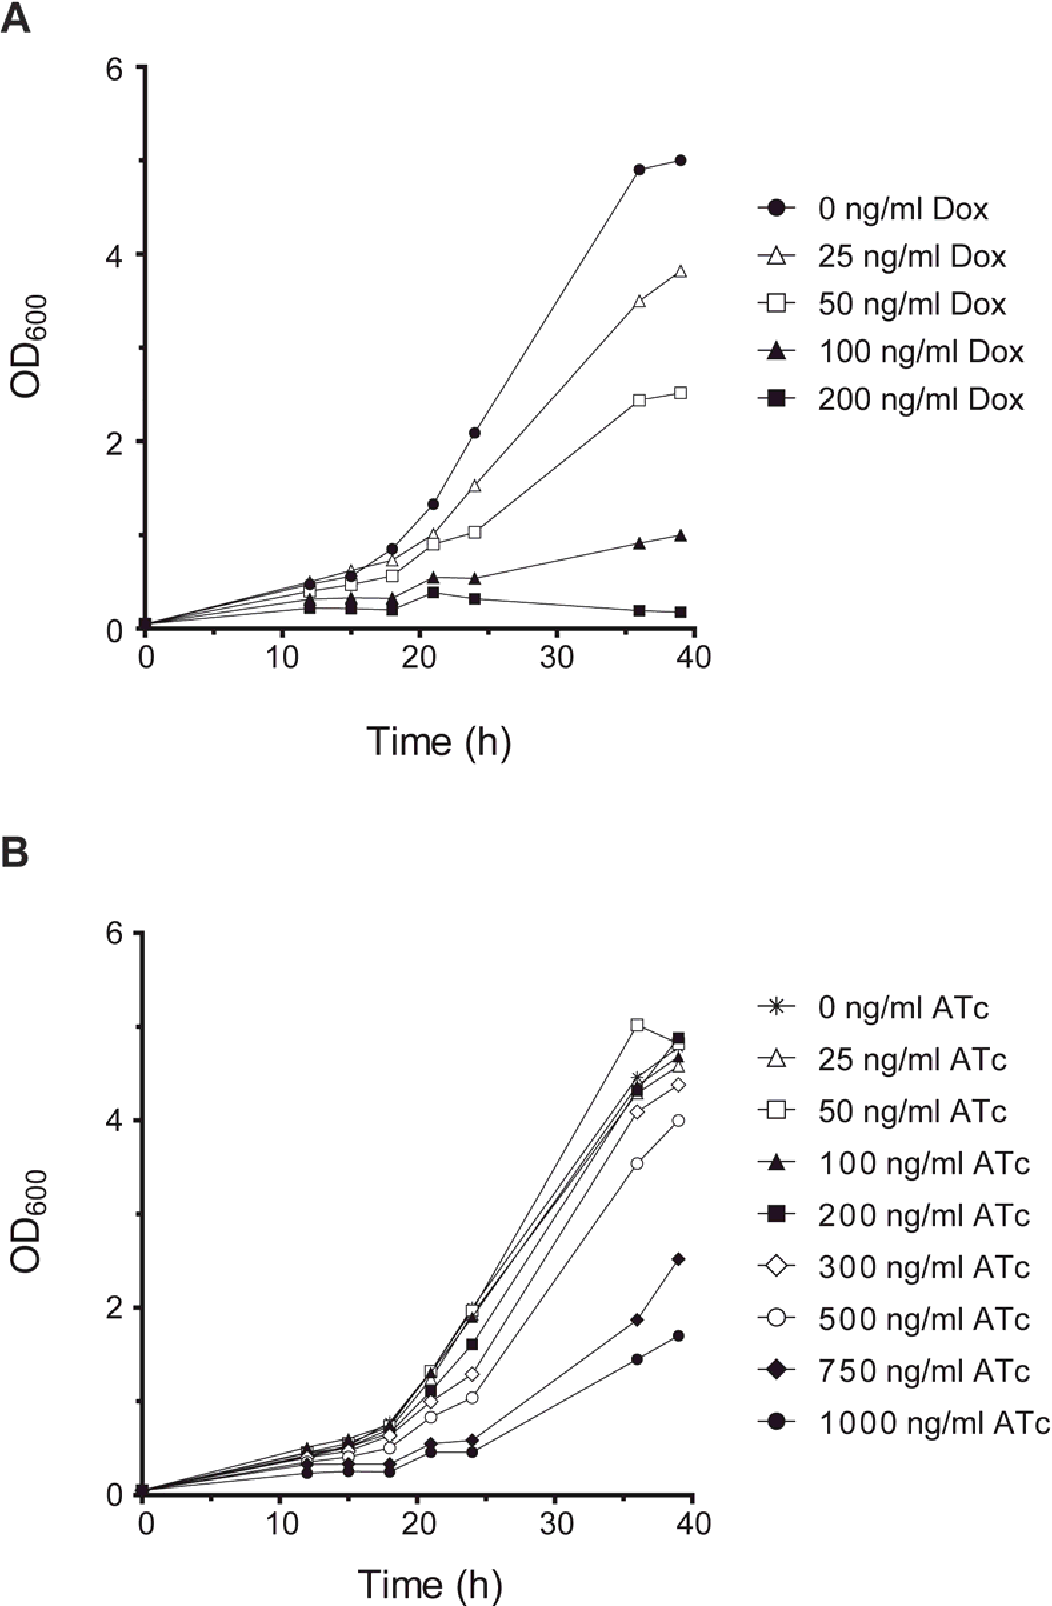 Figure 4-7 Inhibition of H. pylori X47 growth by tetracyclines Growth curves of H. pylori X47 grown in BHI without or with different concentrations of (A) Dox or (B) ATc. The optical densities of each culture was recorded every 3 h.